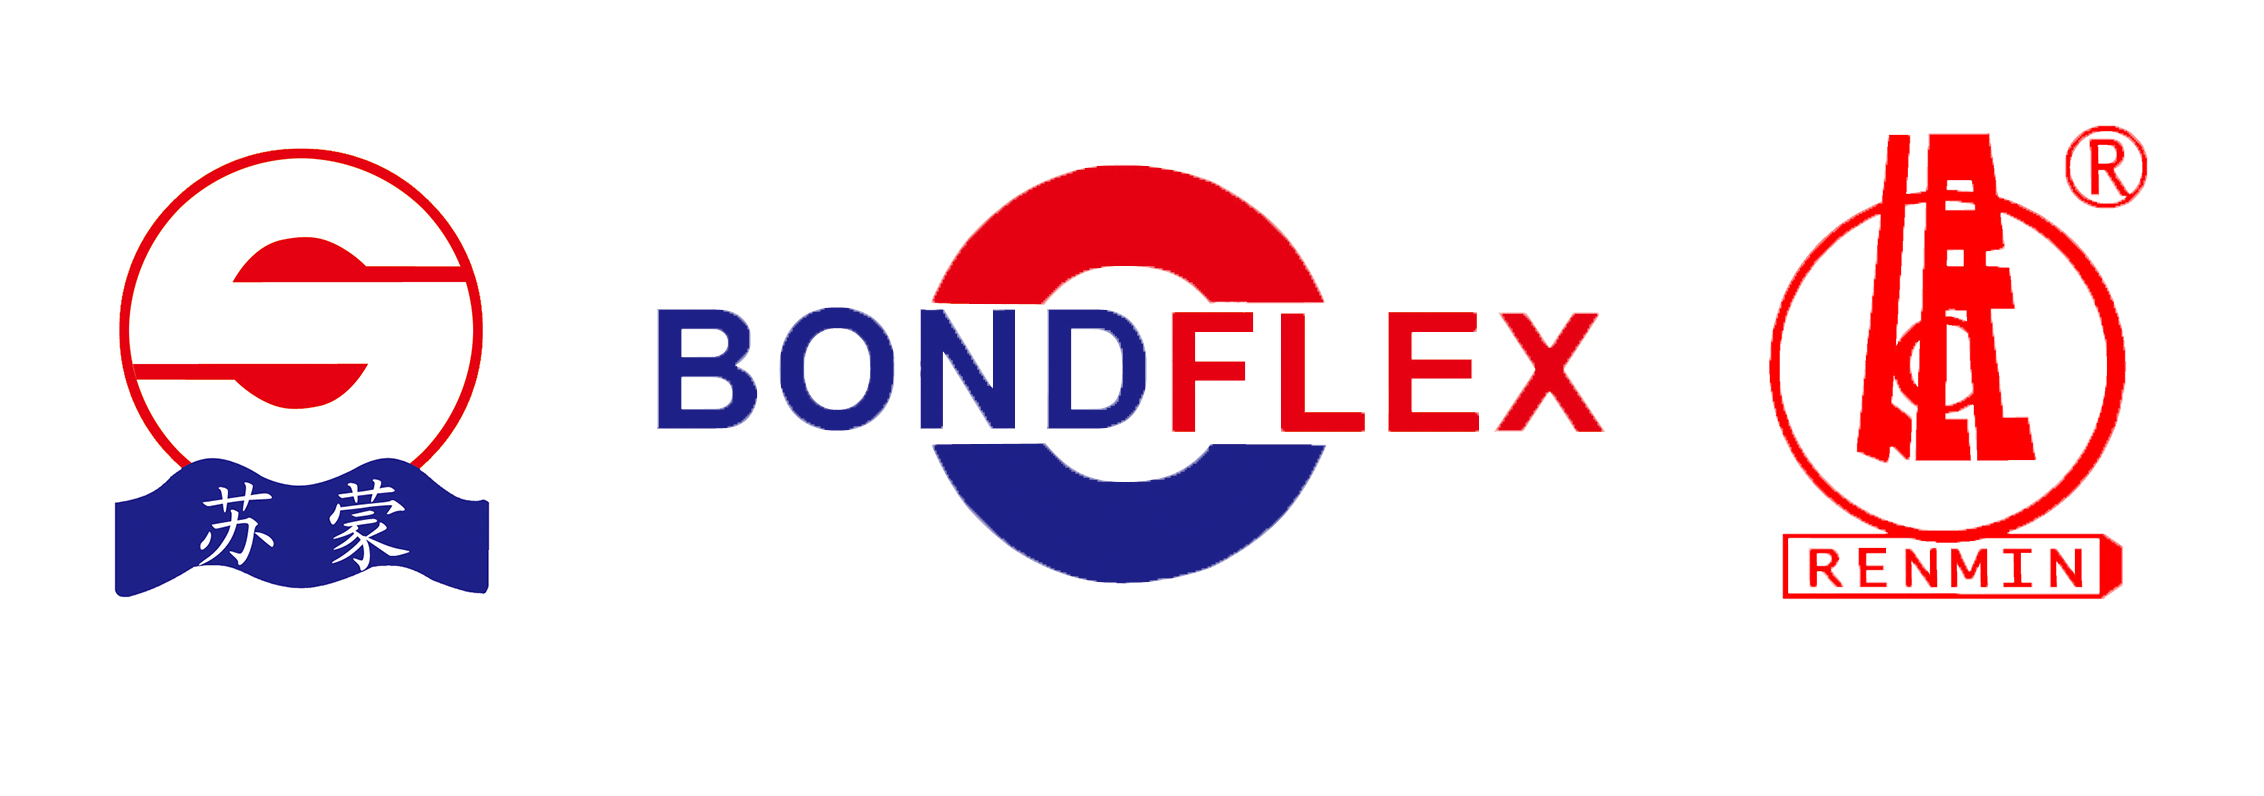 JIANGSU BONDFLEX SUMENG NEW MATERIAL CO.,LTD